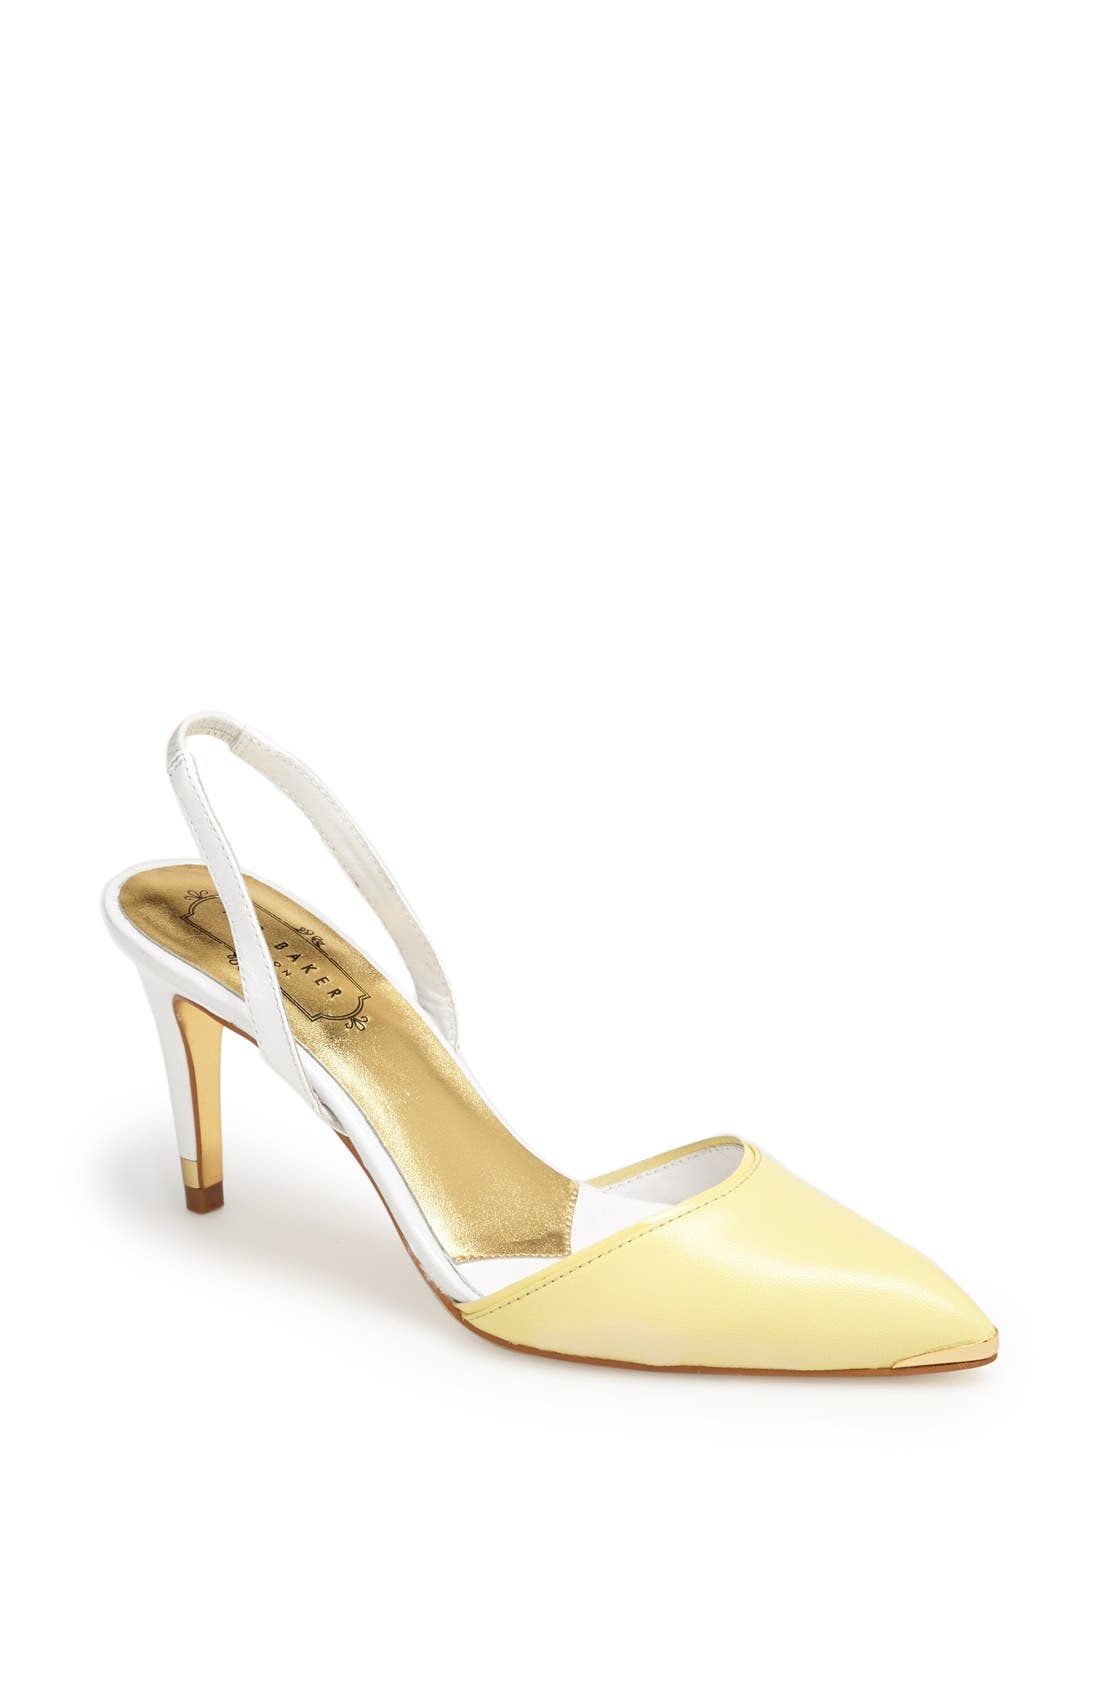 Alternate Image 1 Selected - Ted Baker London 'Caareen' Slingback Pump